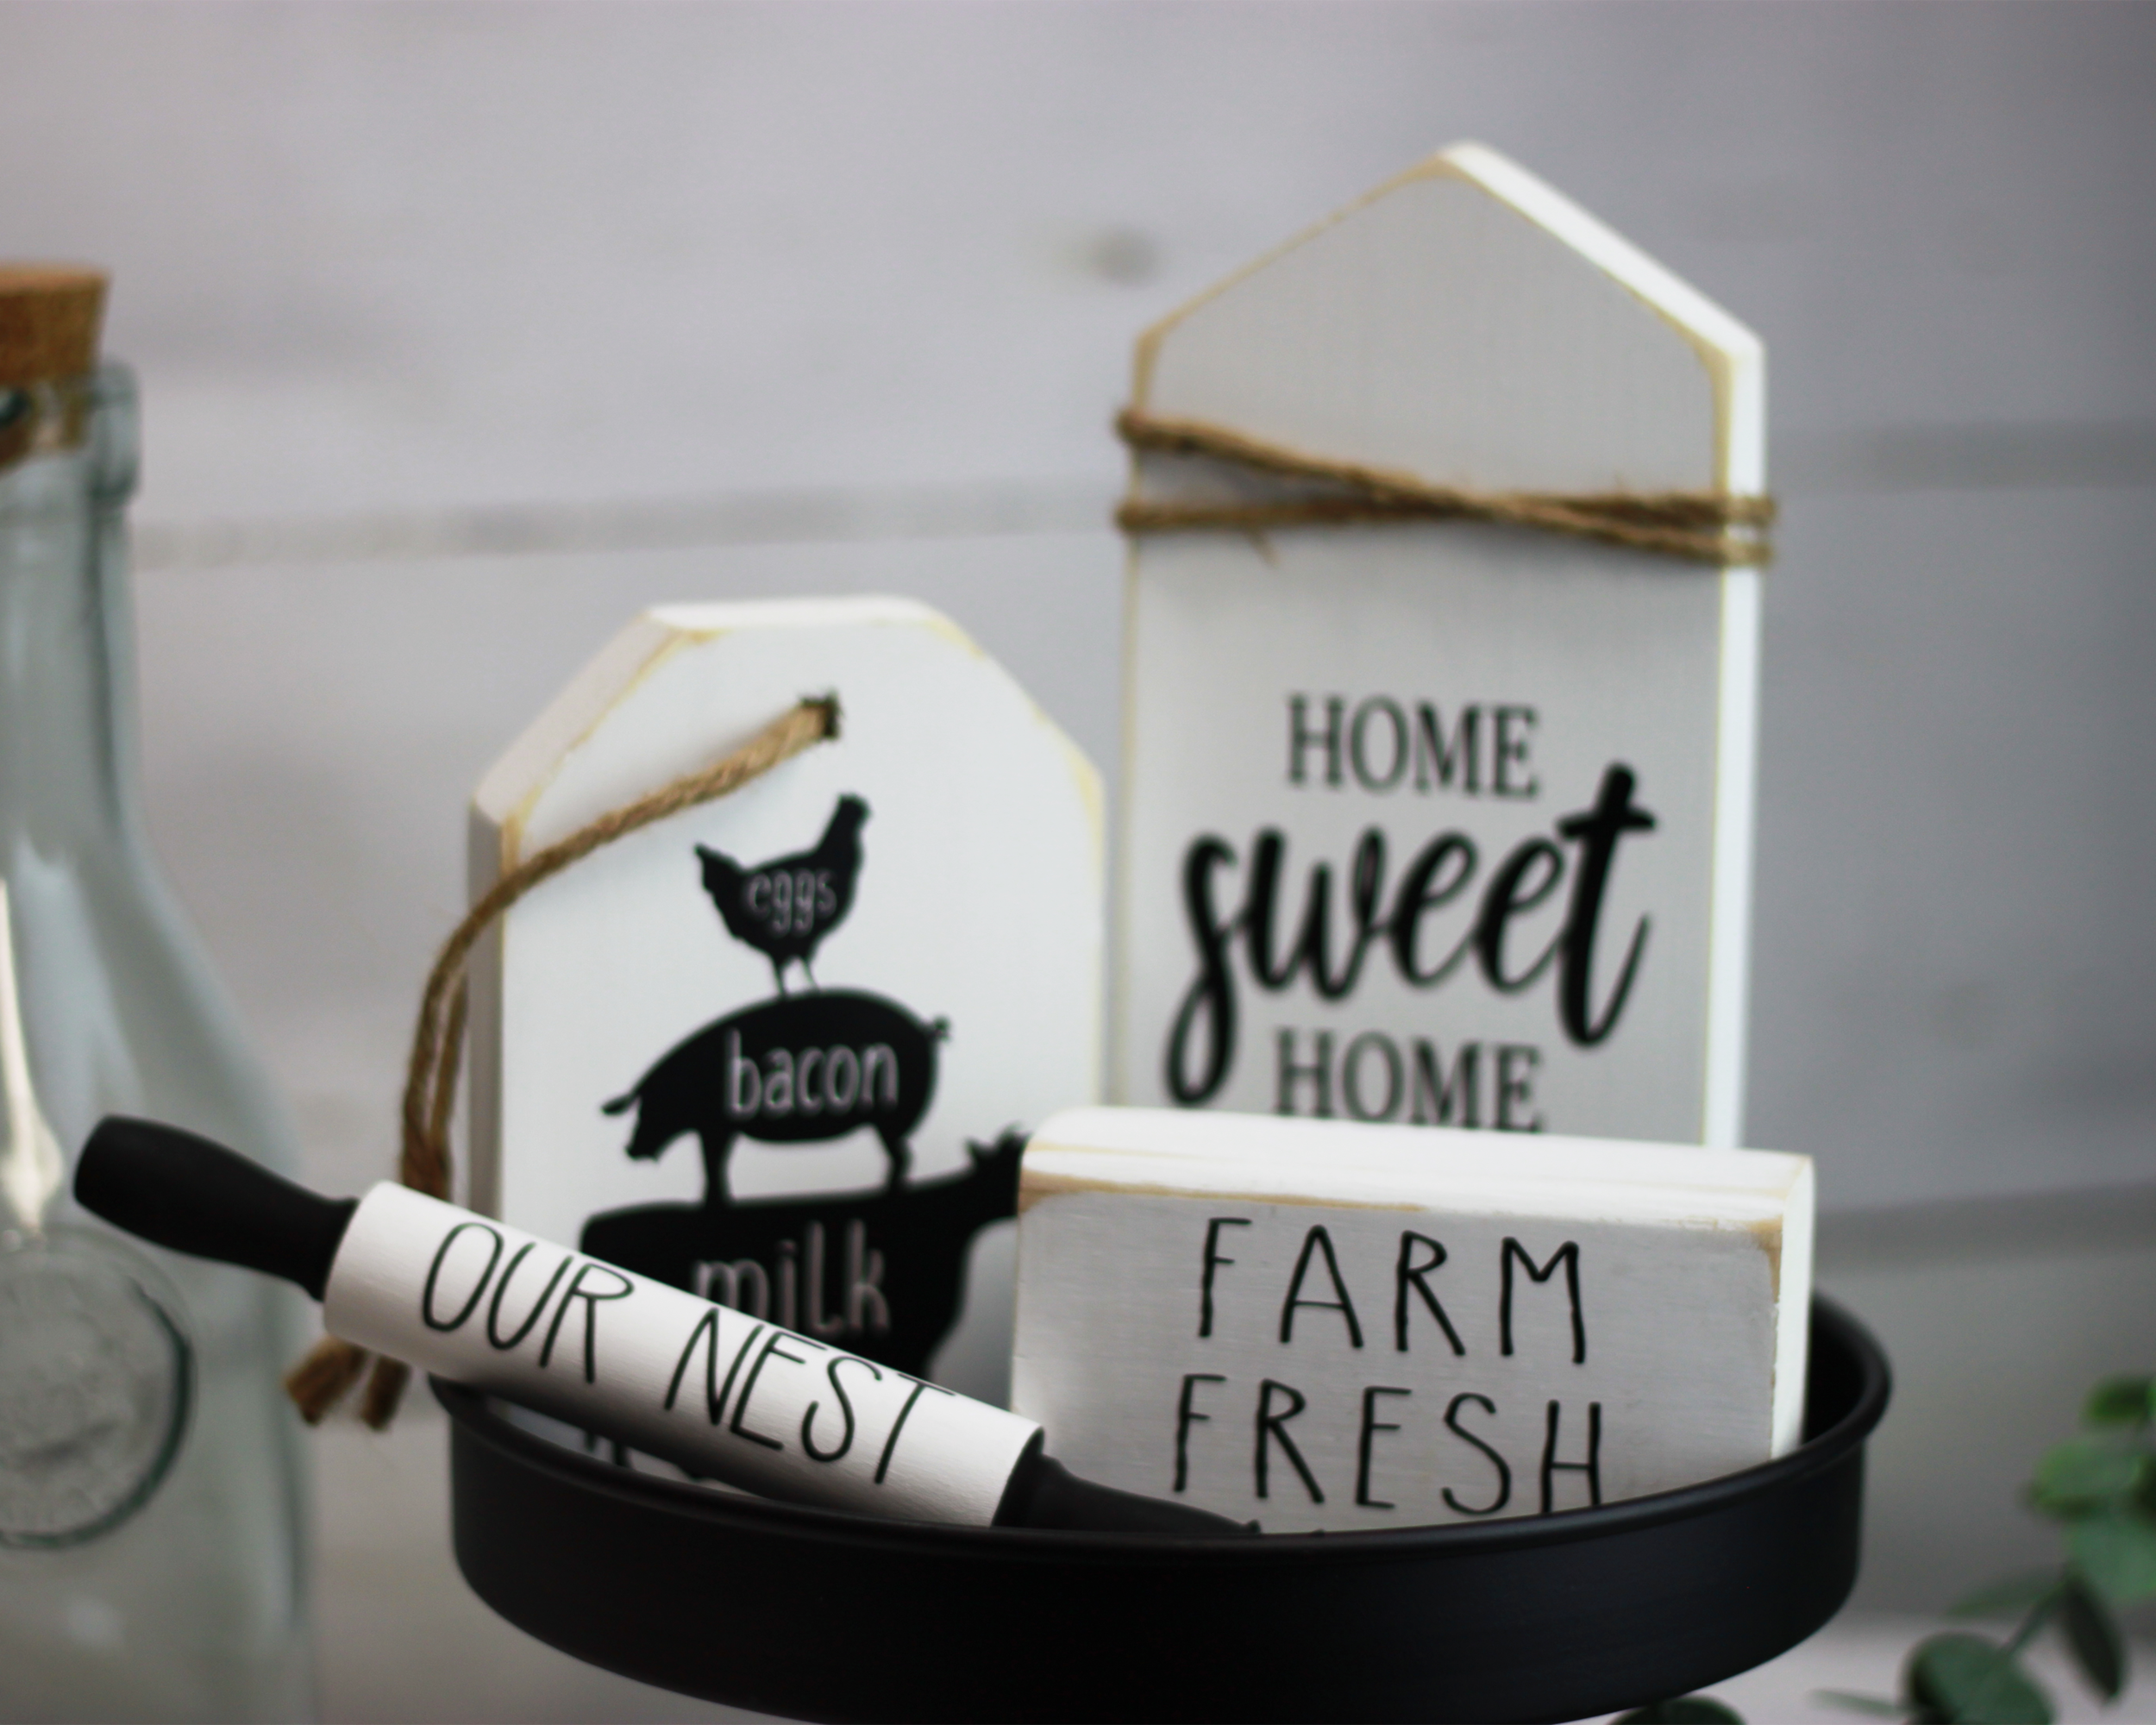 Classic farmhouse tiered tray signs